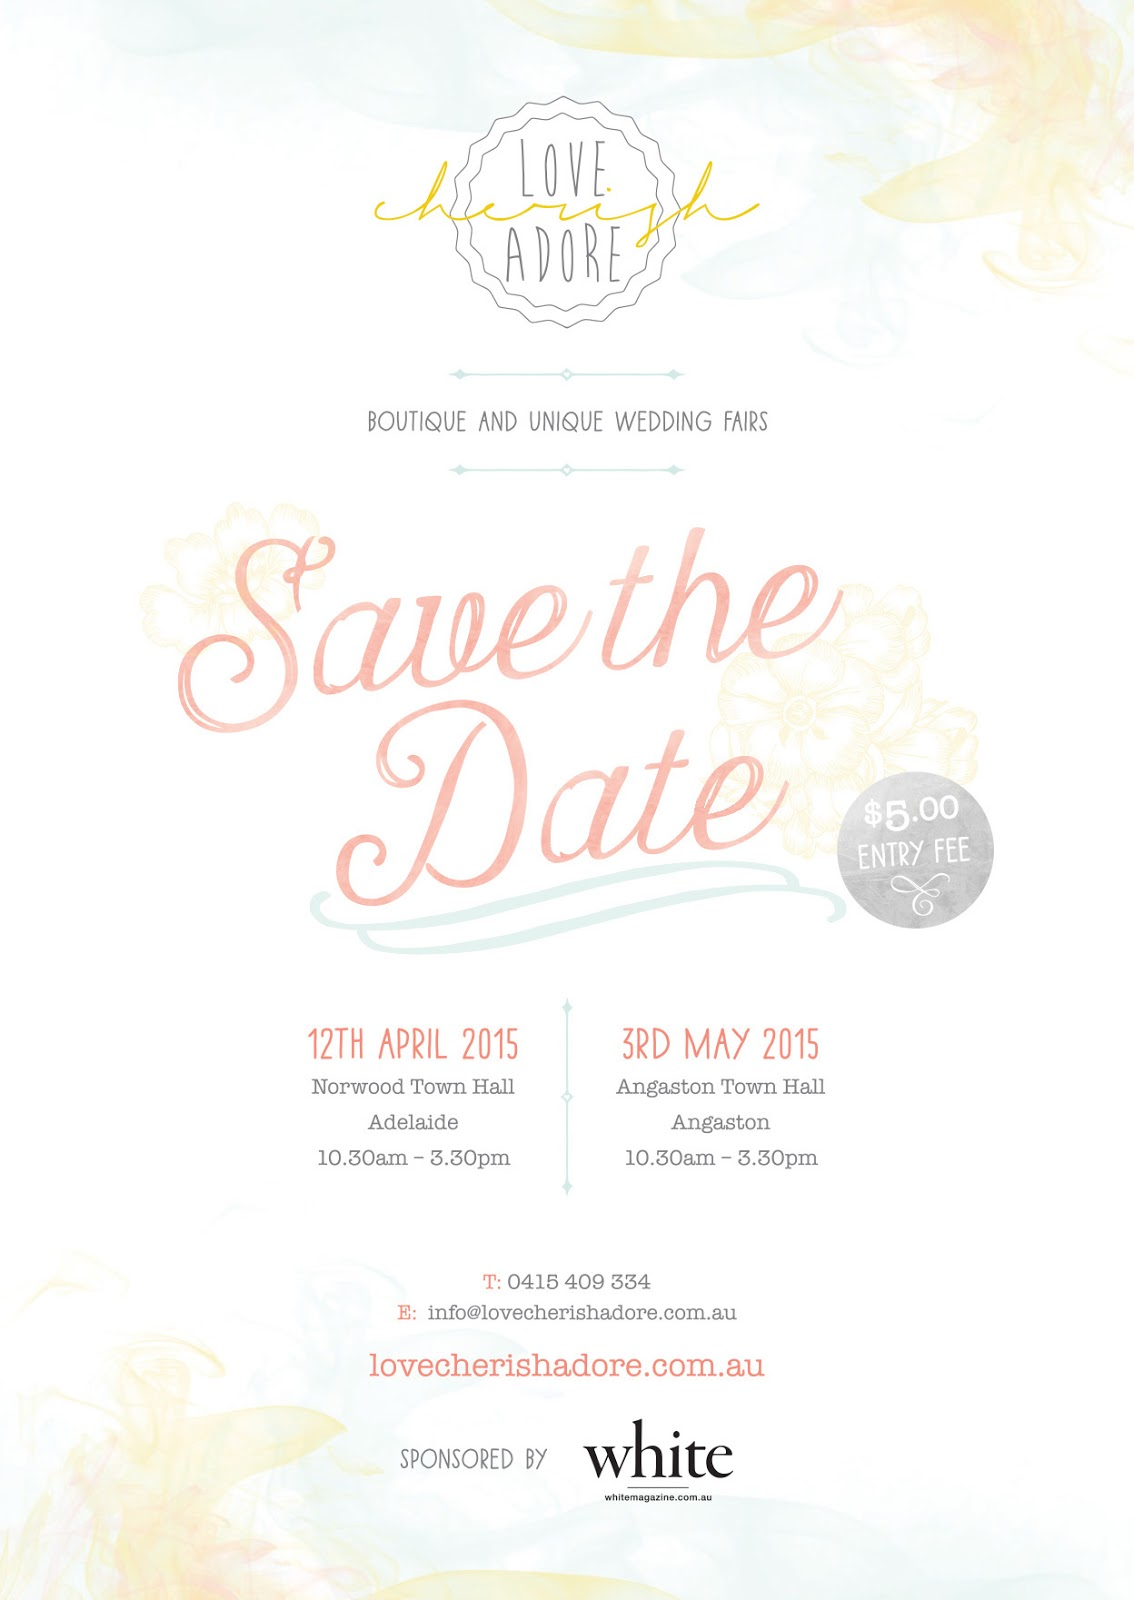 Adelaide Wedding Fair Love Cherish Adore Sail and Swan Vintage Rustic Boho Indie Wedding